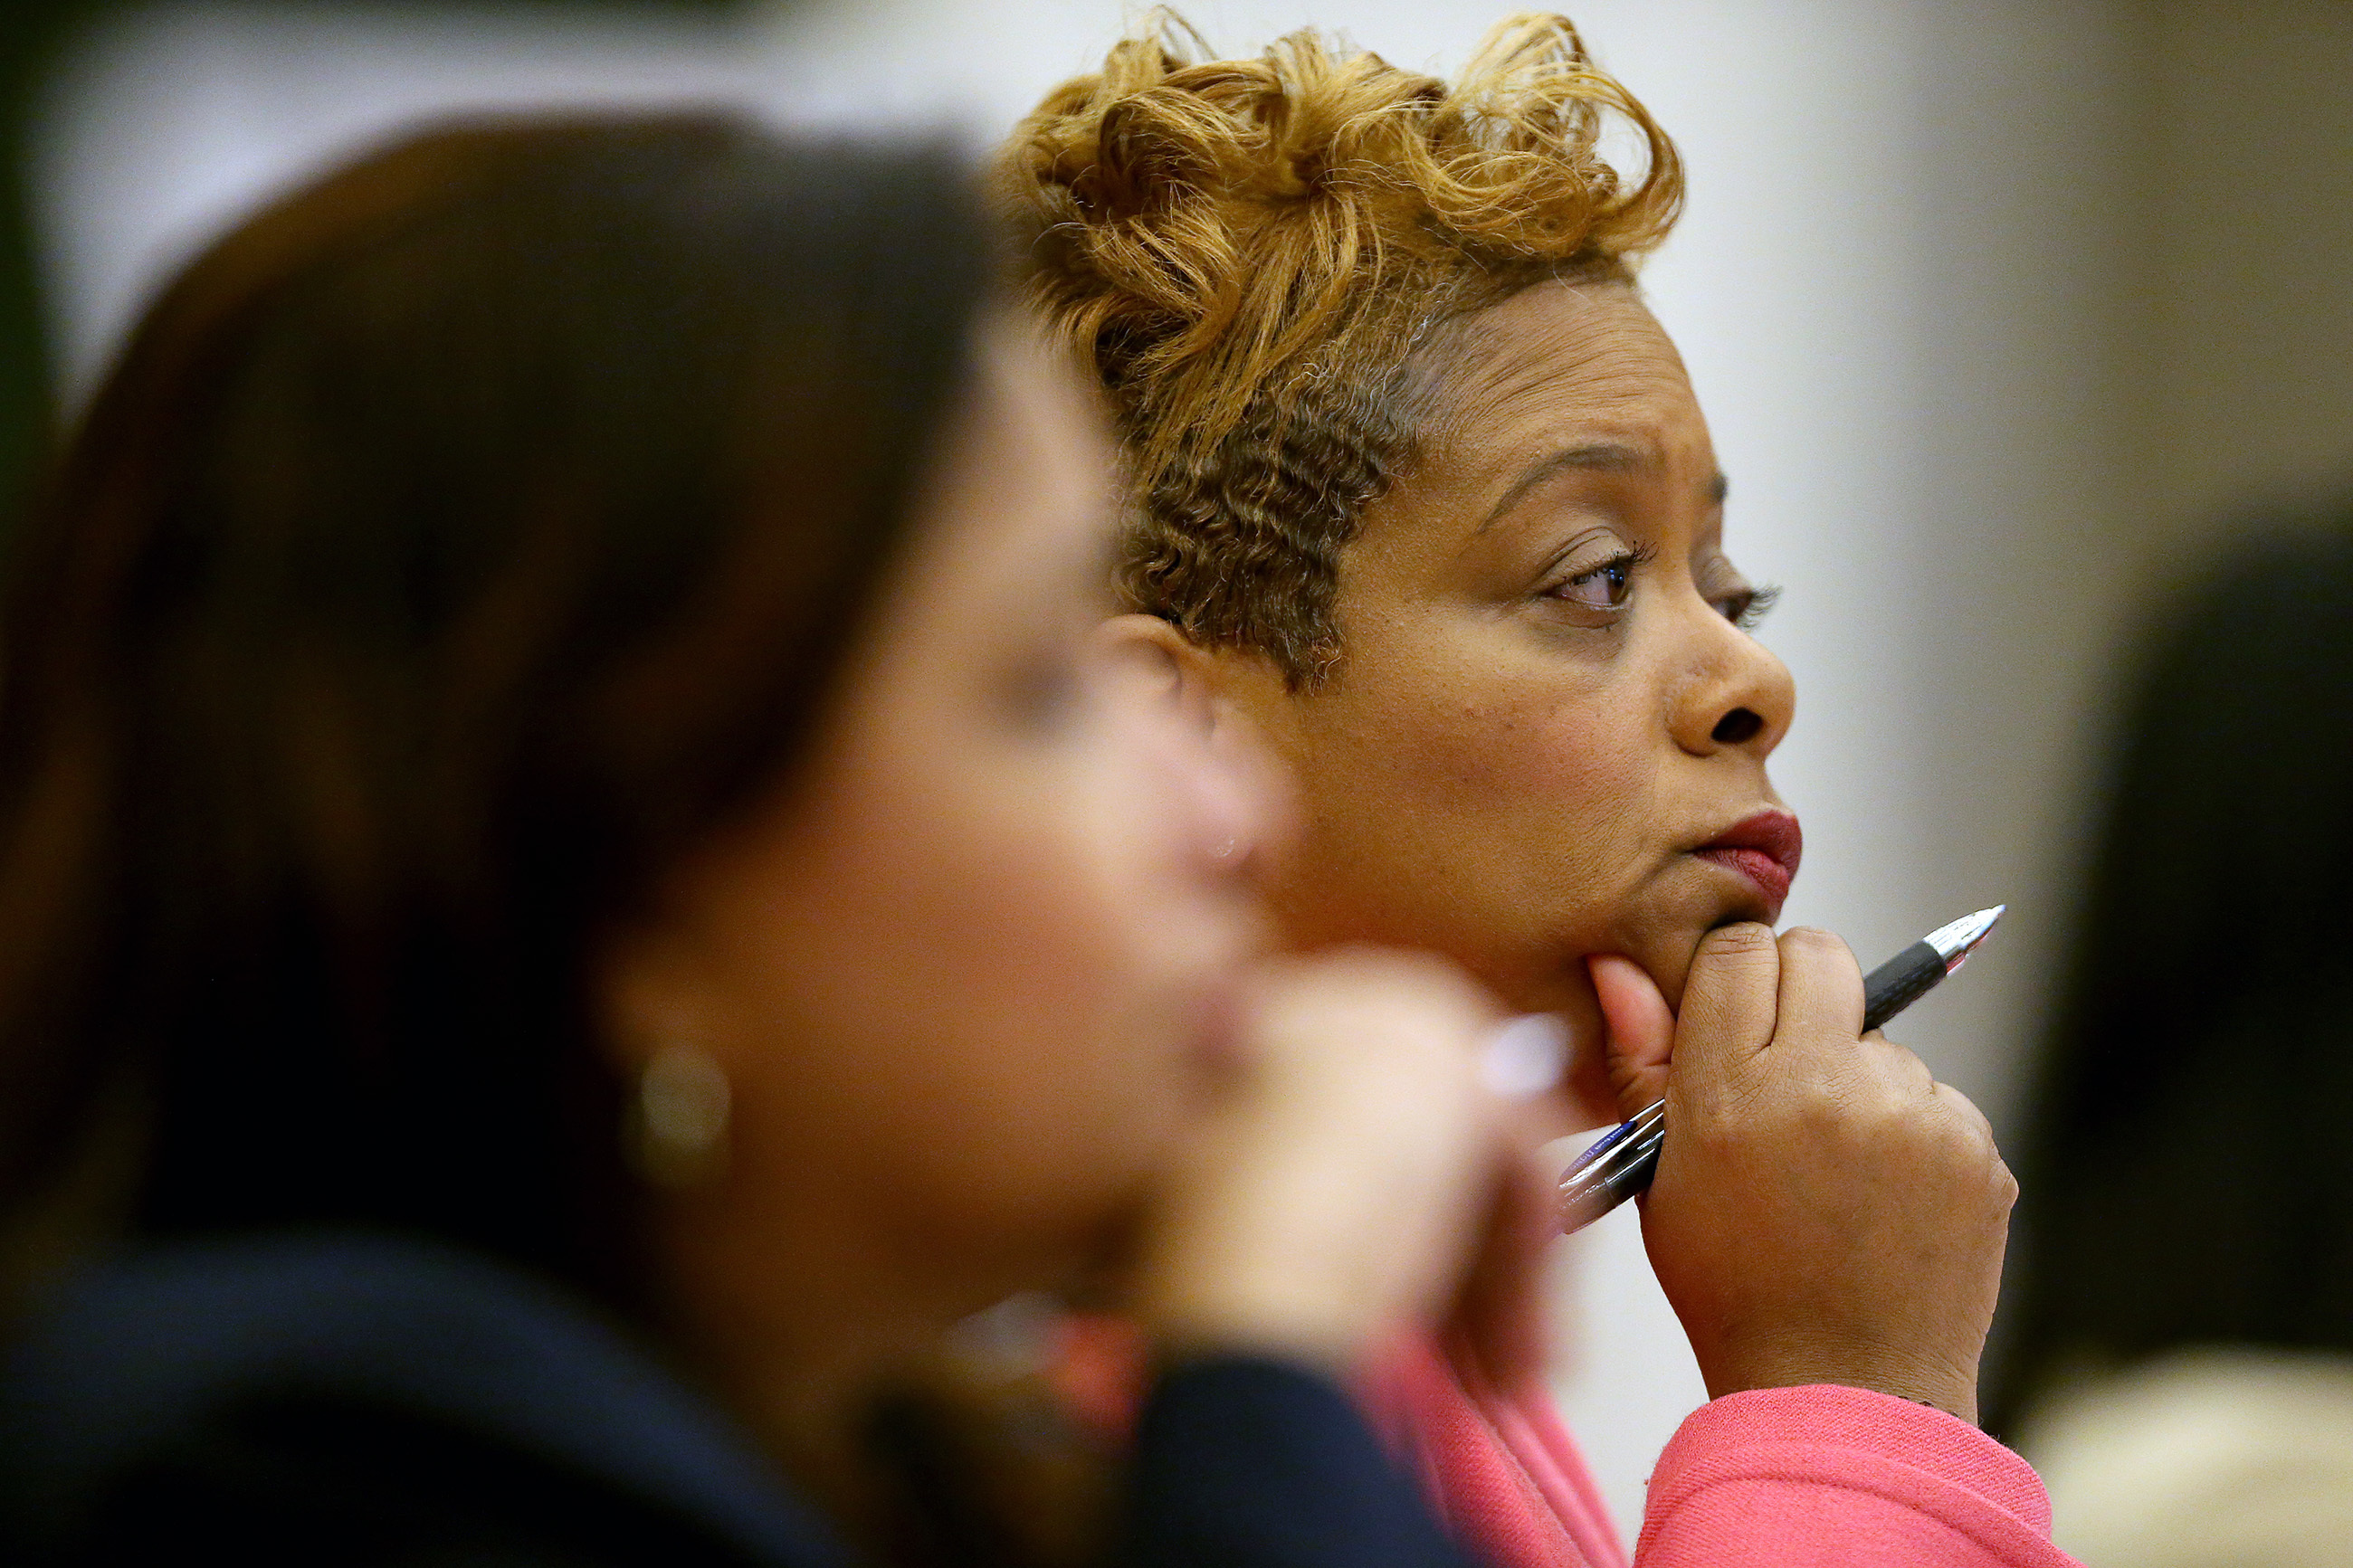 Councilwoman Cindy Bass, right, listens during City Council hearing on the opioid crisis at City Hall in Philadelphia, PA on March 12, 2018.